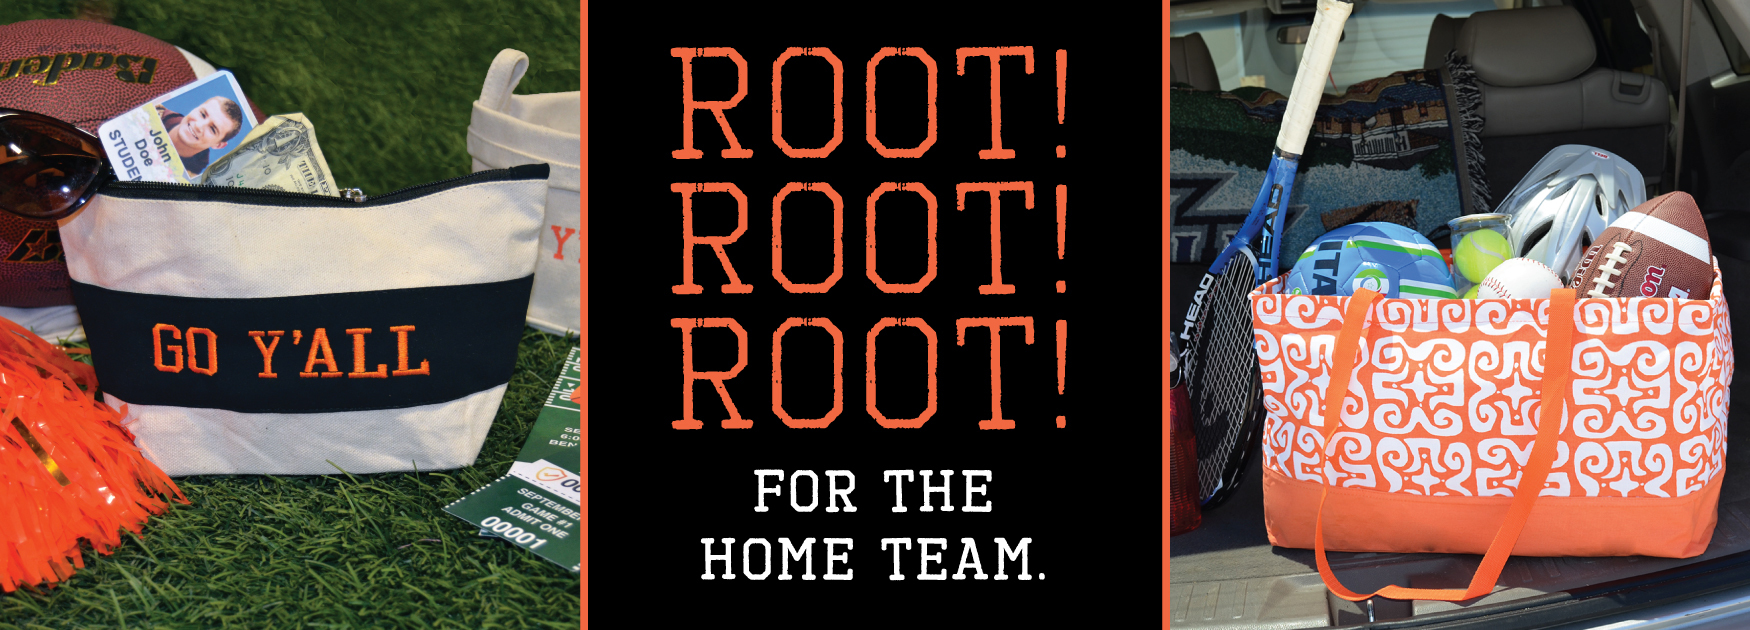 root for your home team